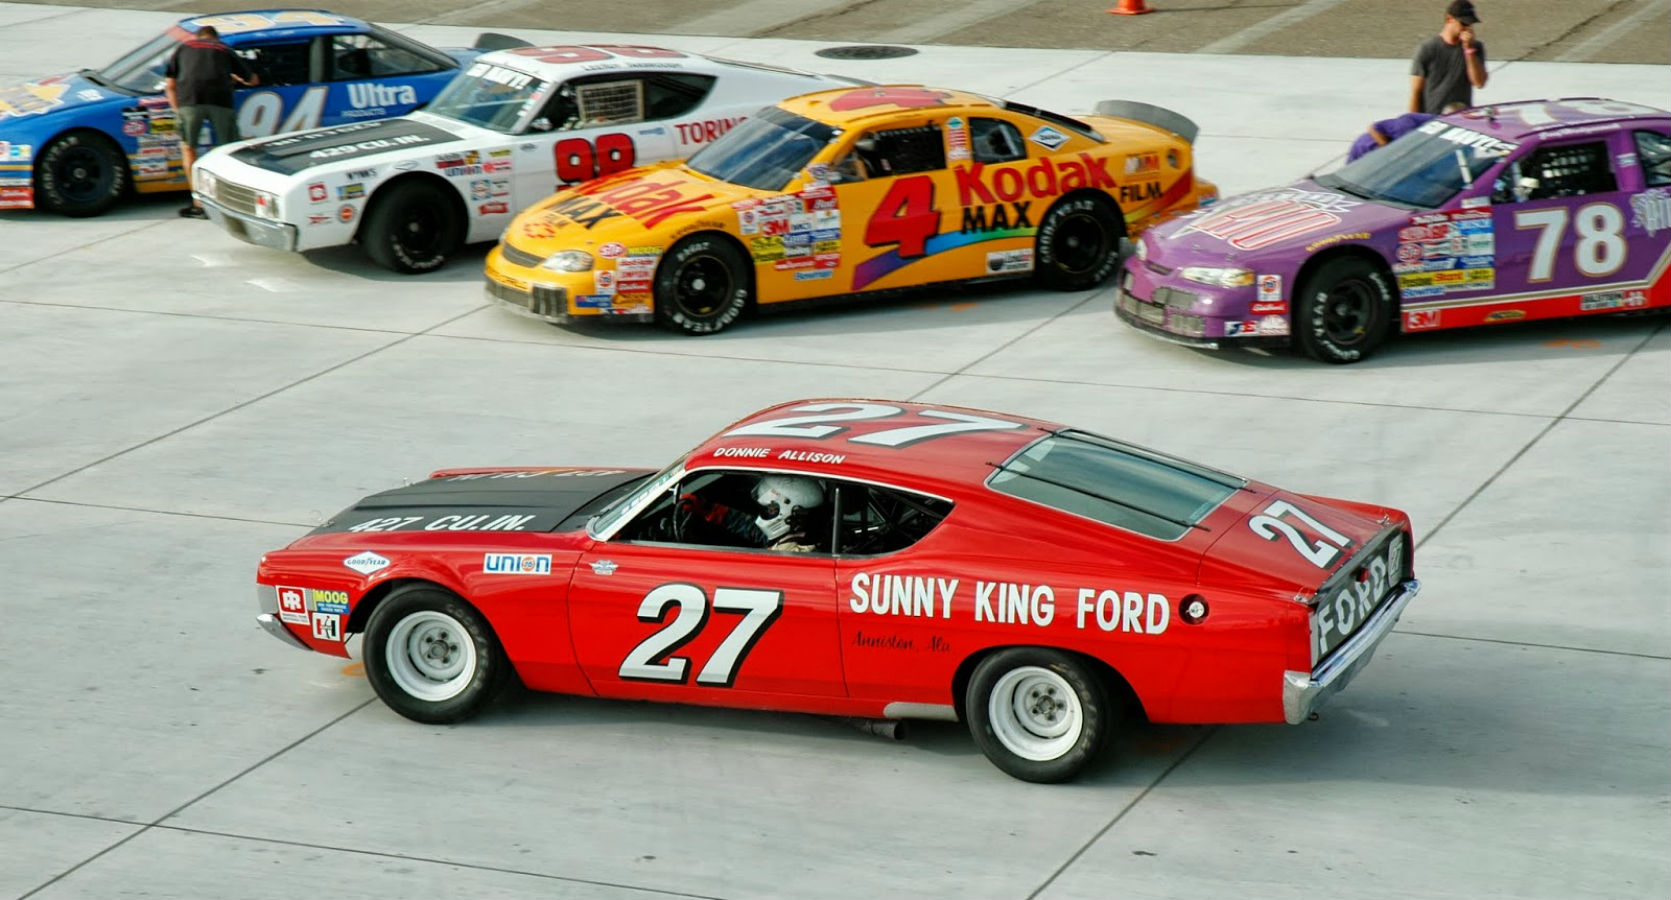 Hot Rod Rods Classic Muscle 1969 Ford Torino Nascar Race